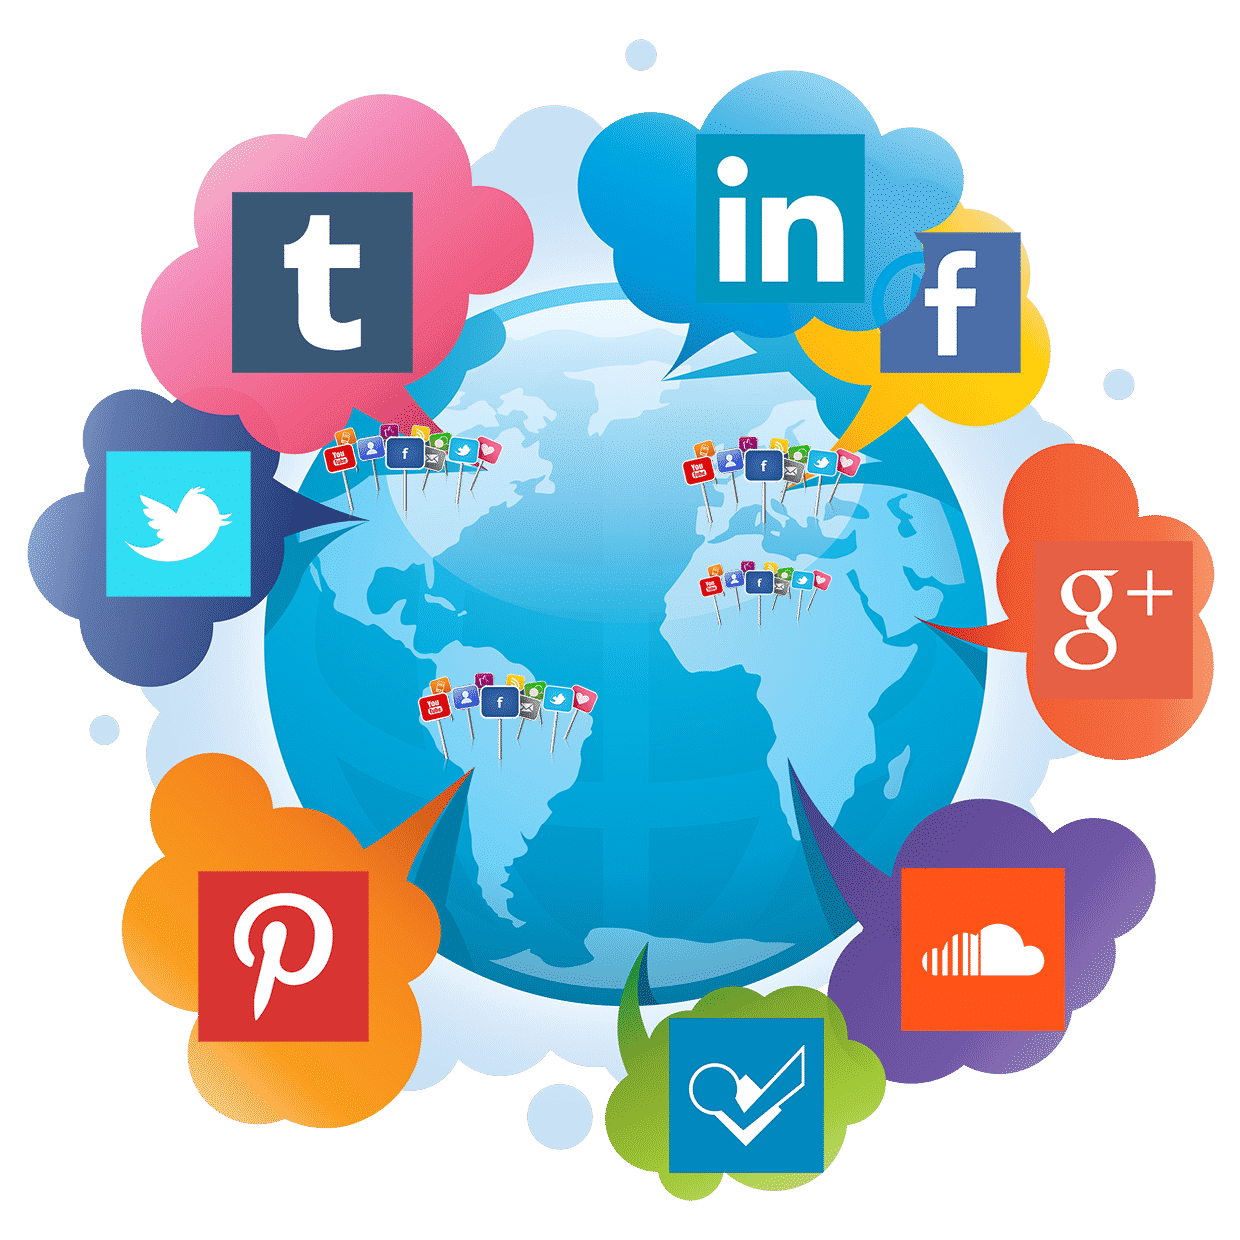 Digital Marketing Services - Social Media Marketing - Content Marketing - PPC and Brand Management